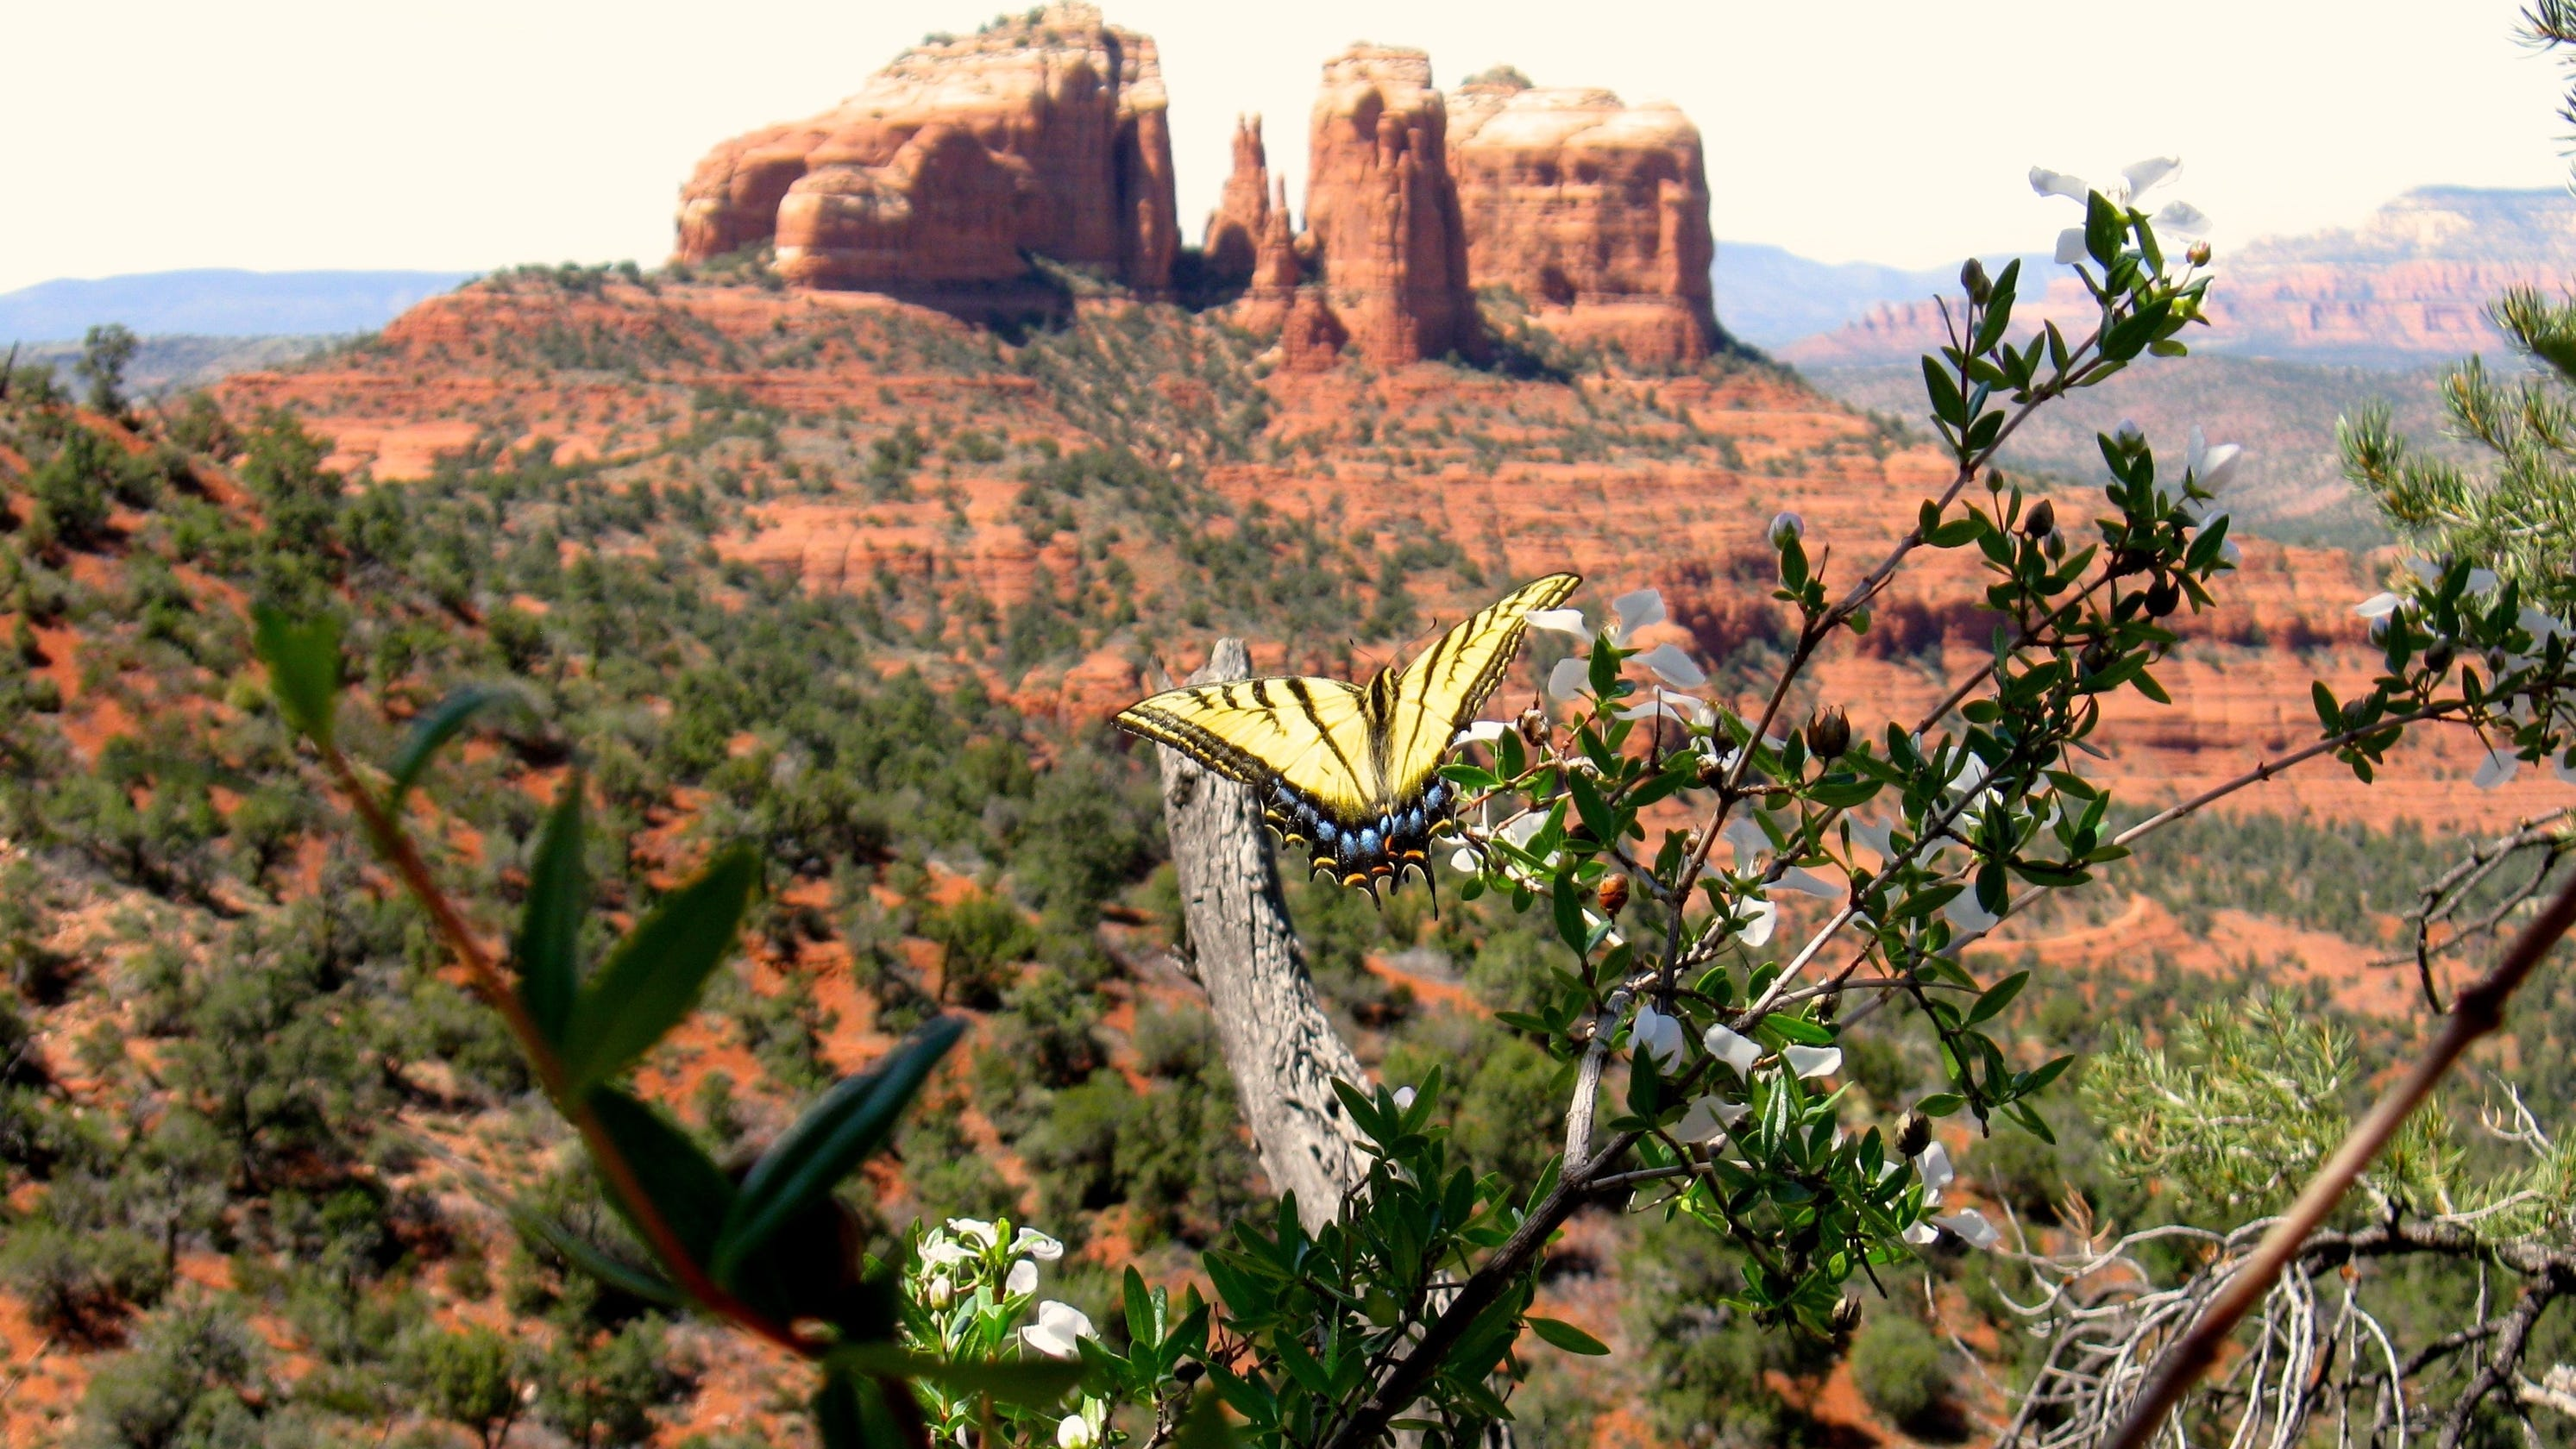 Celebrities are flocking to Sedona during the pandemic. Here's who visited Arizona and why